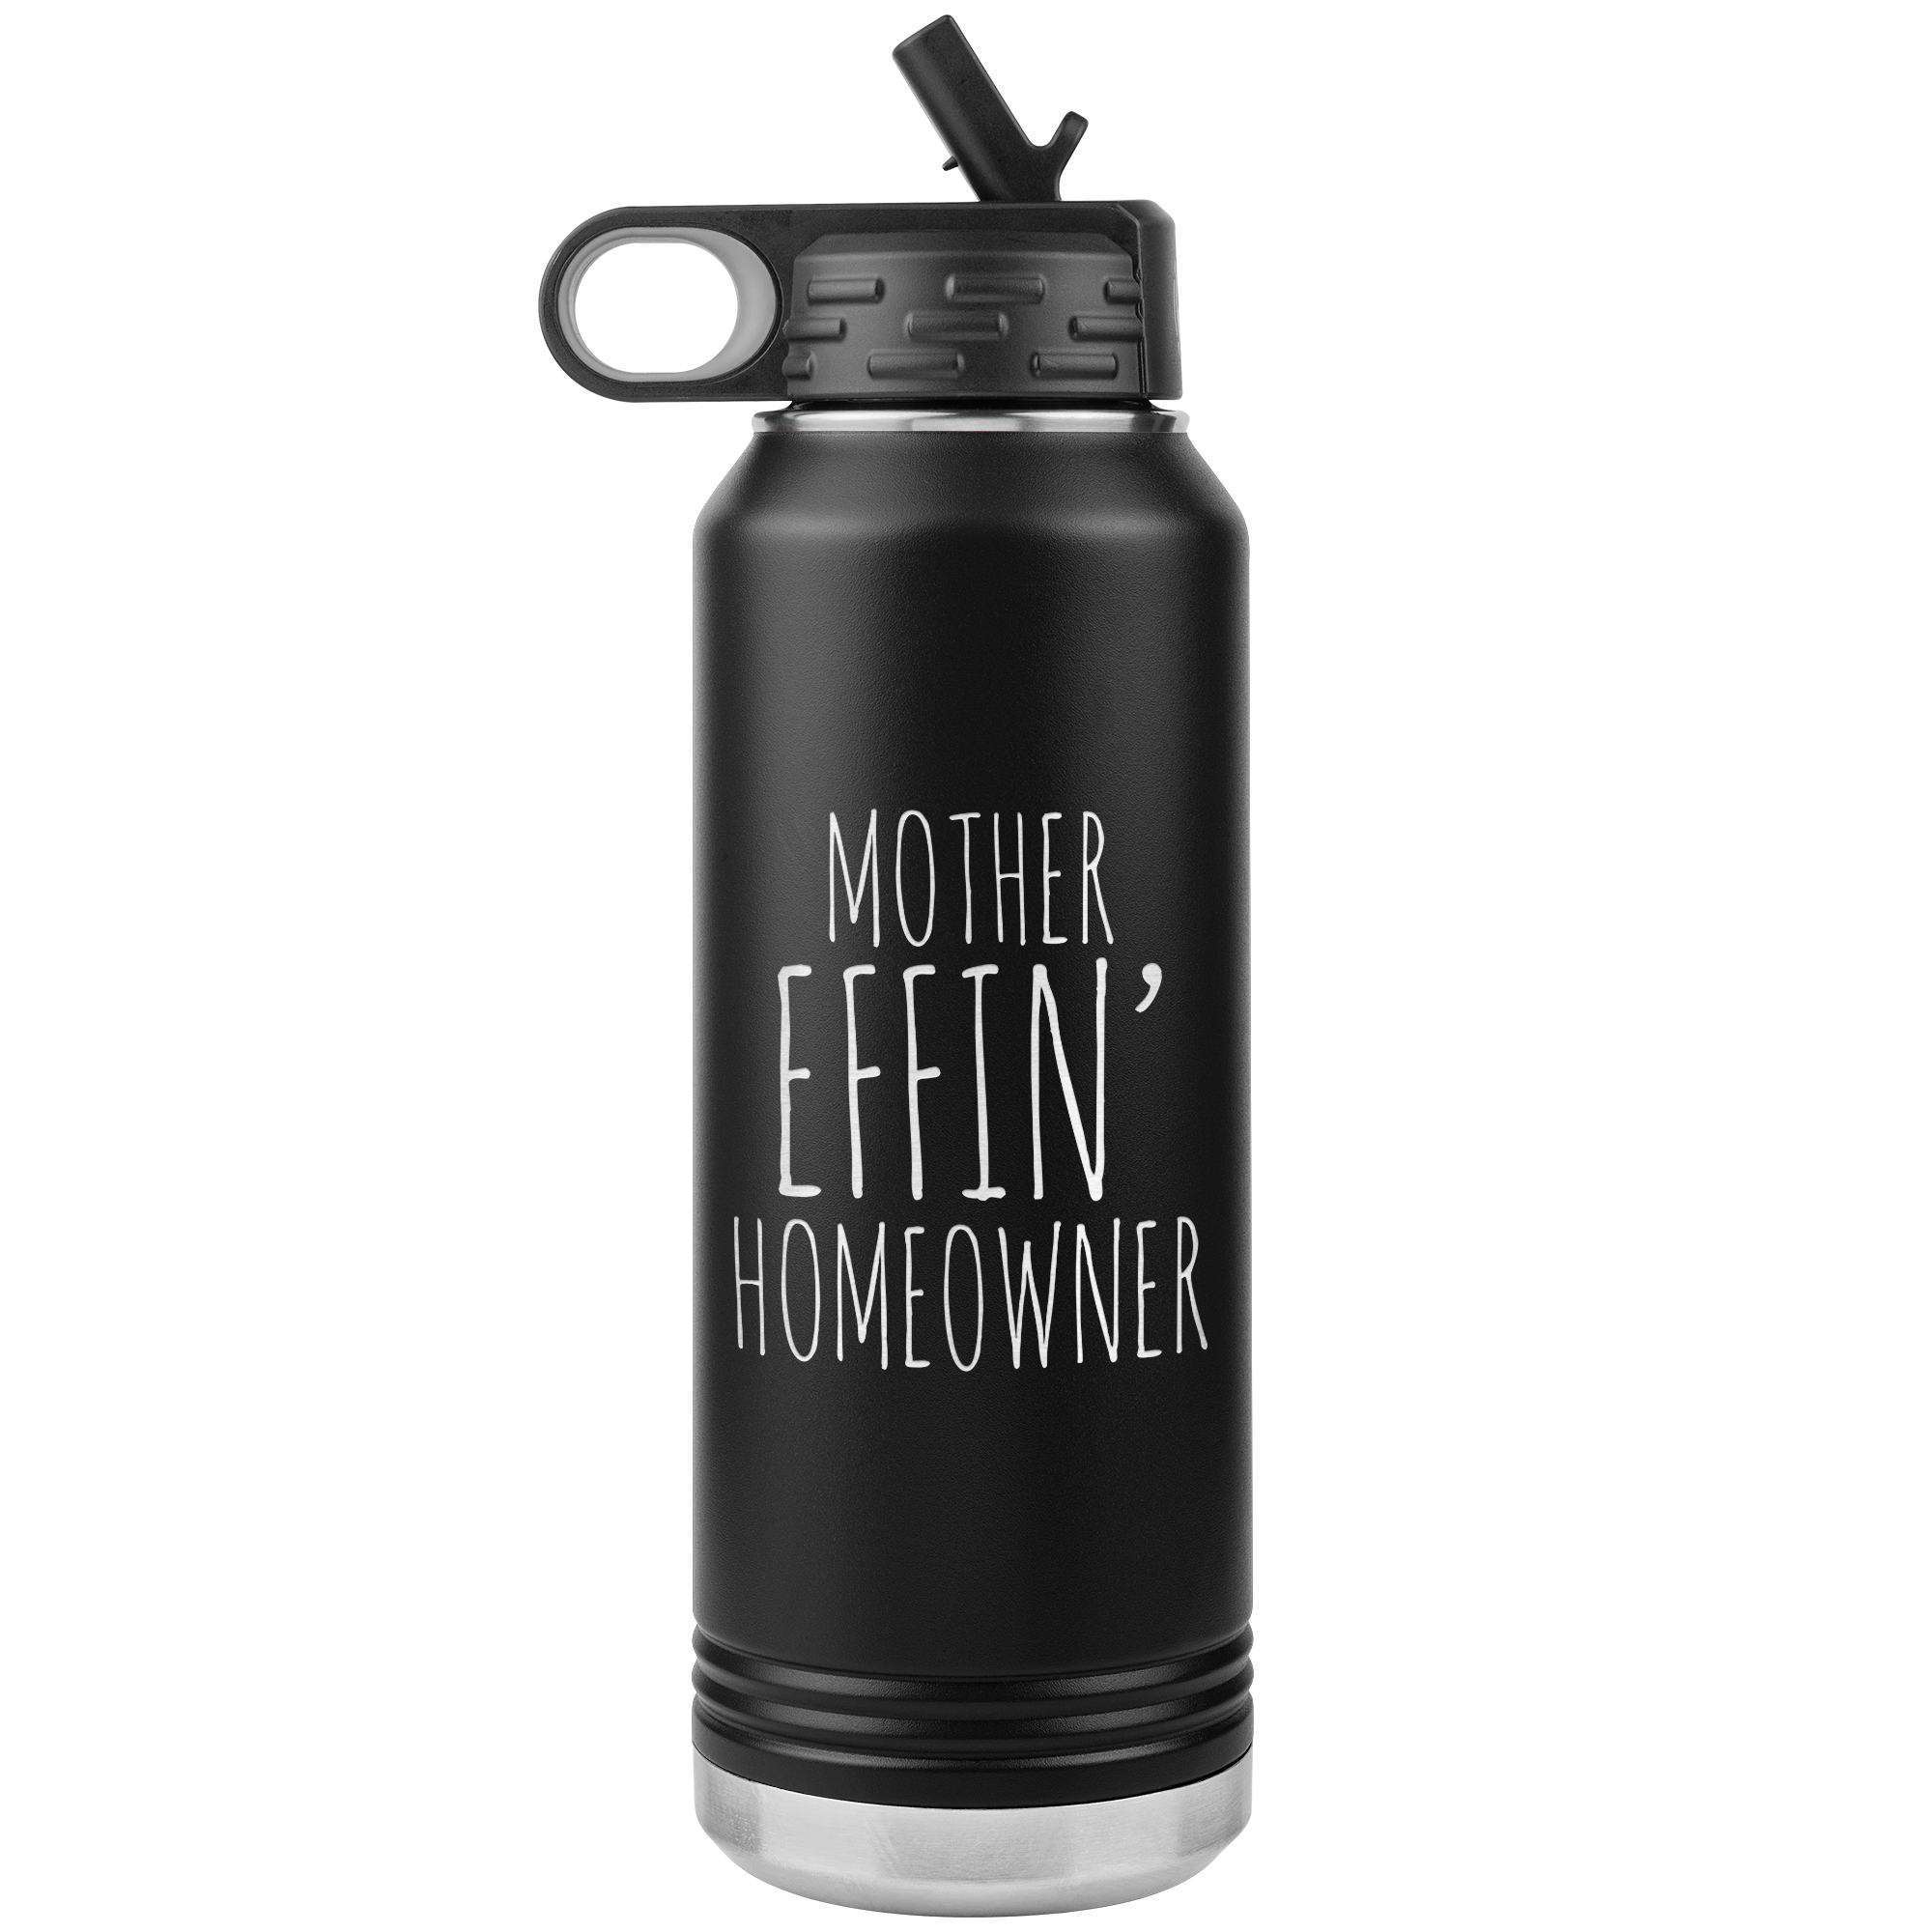 Housewarming Gift Funny New Homeowner Gifts First Home Homeowner Housewarming Funny Brand New Home Insulated Water Bottle 32oz BPA Free